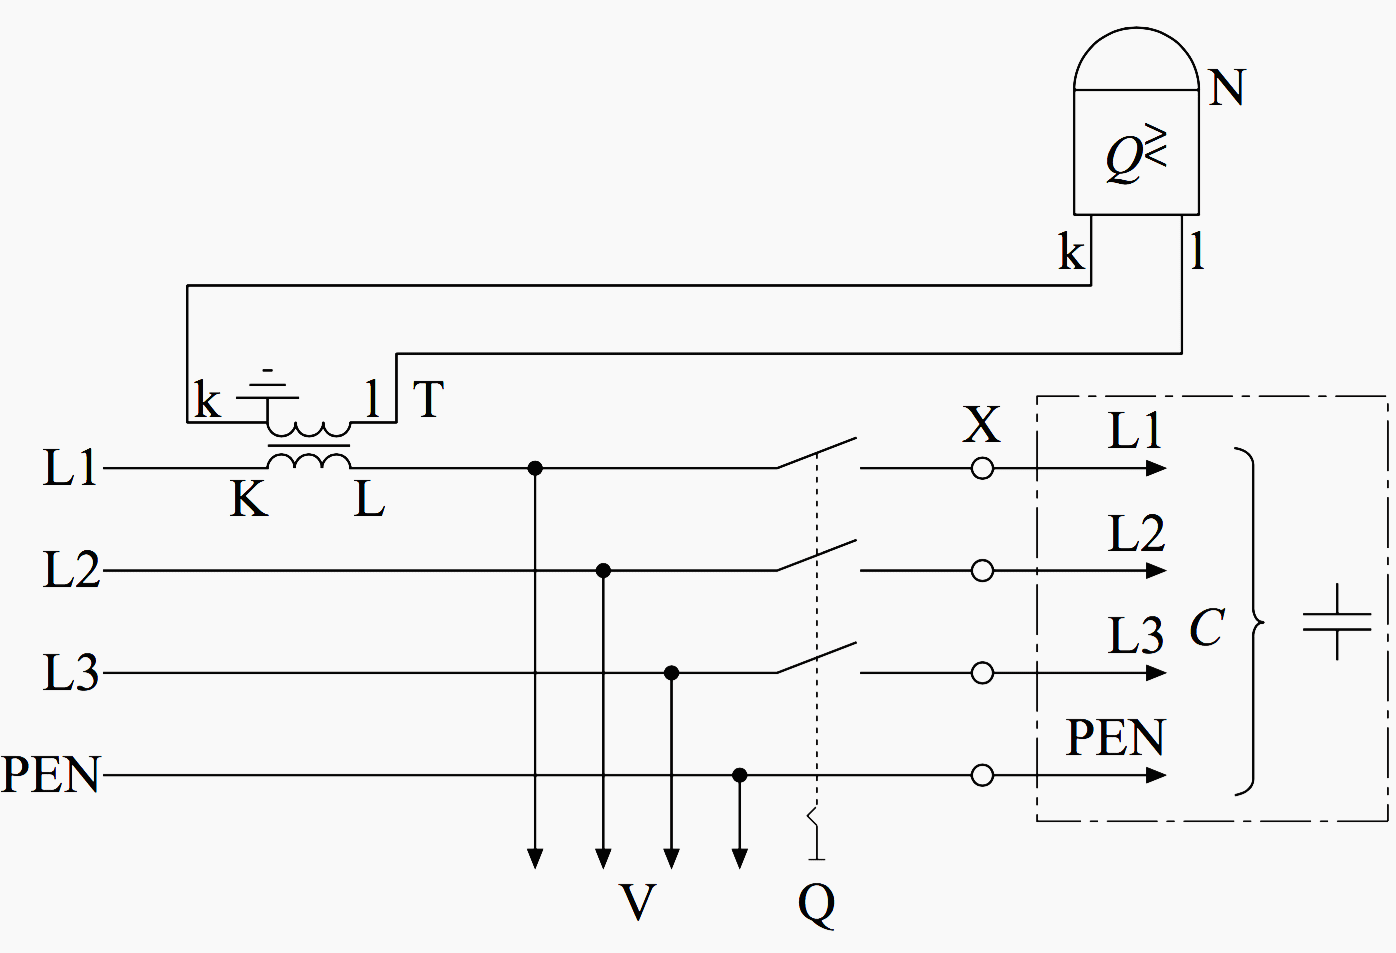 hight resolution of simplified connecting diagram of the current path to the reactive power relay